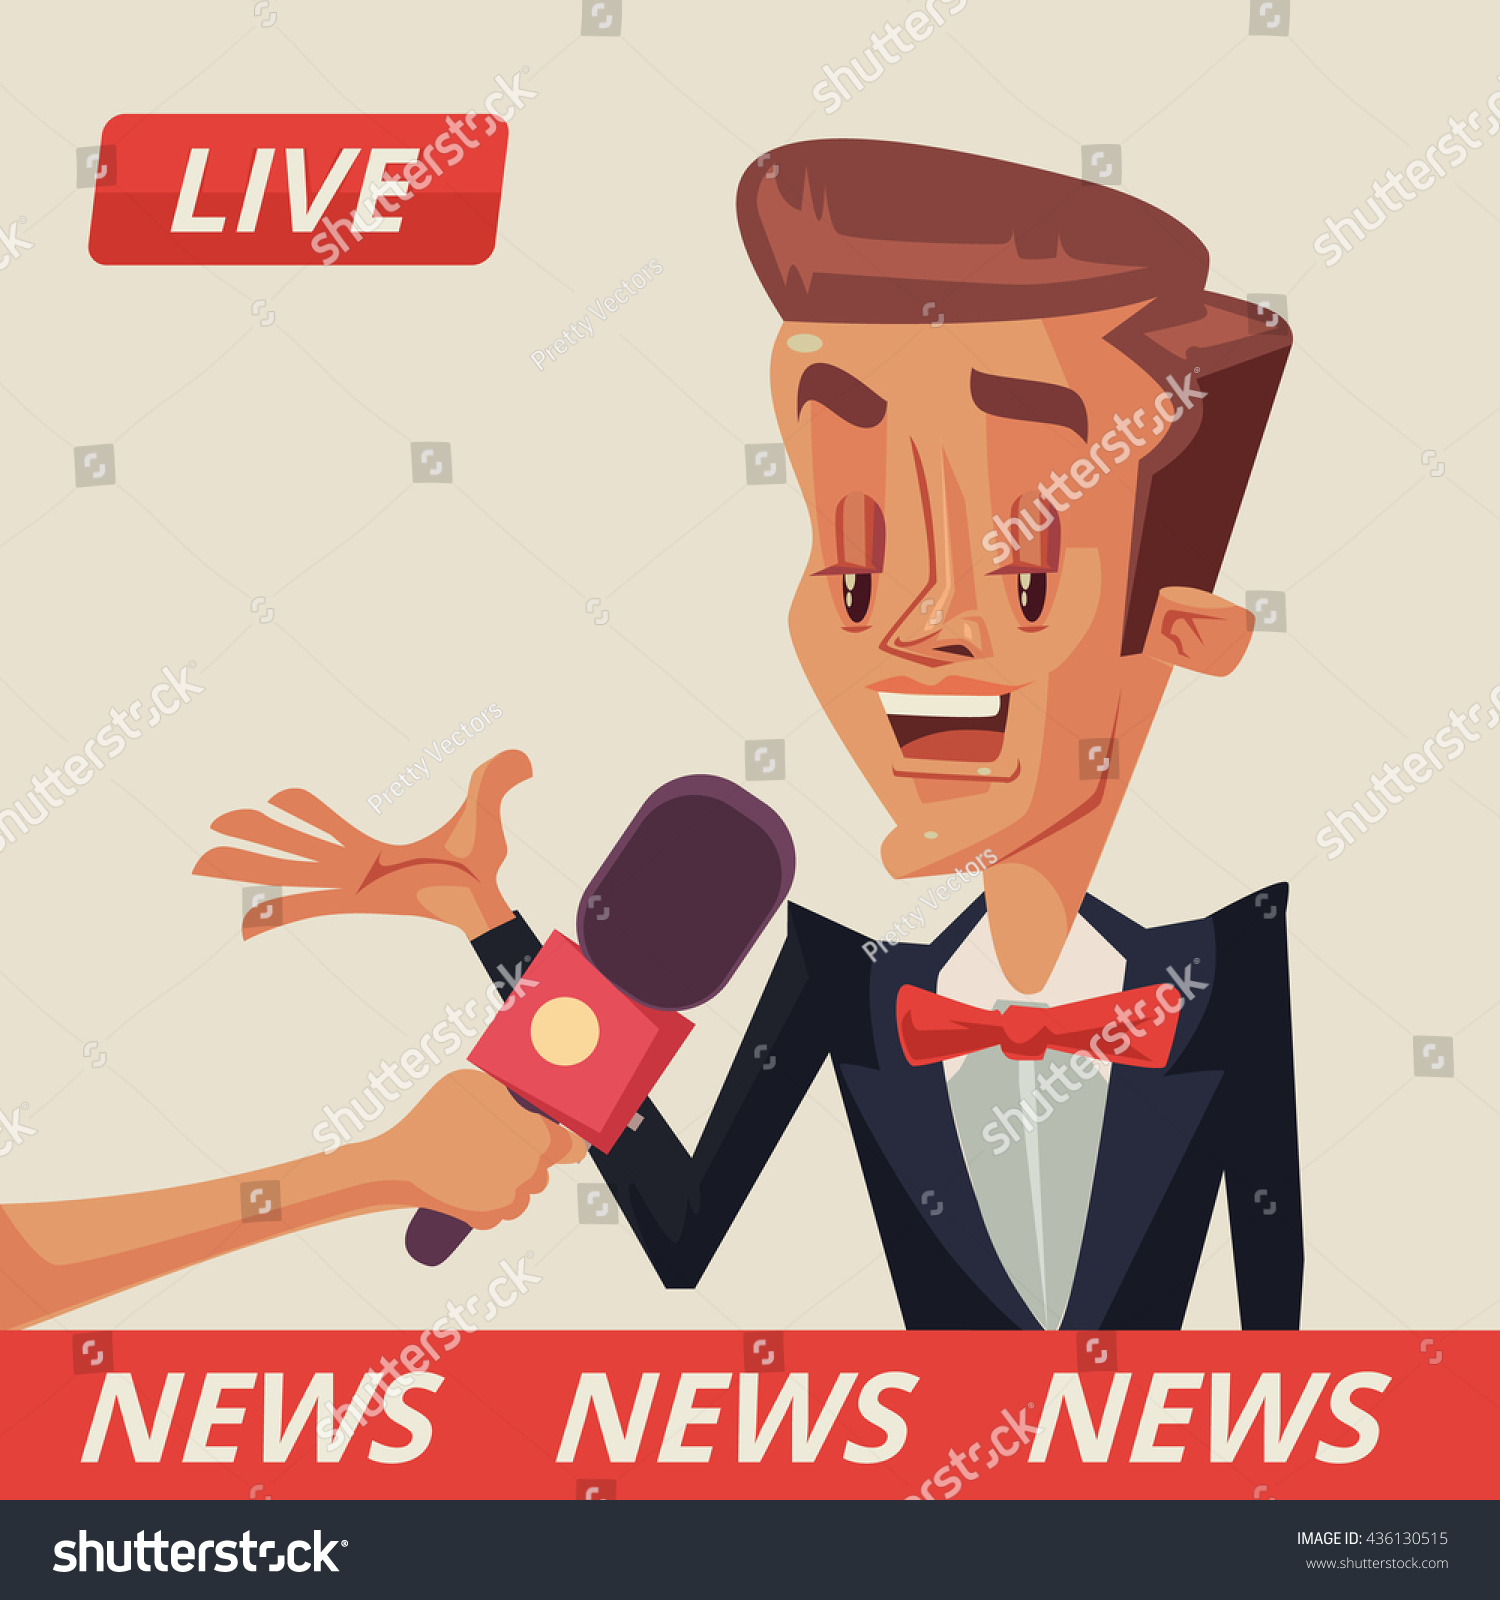 live interview interviews politicians interview movie stock vector live interview interviews politicians interview movie star vector flat cartoon illustration